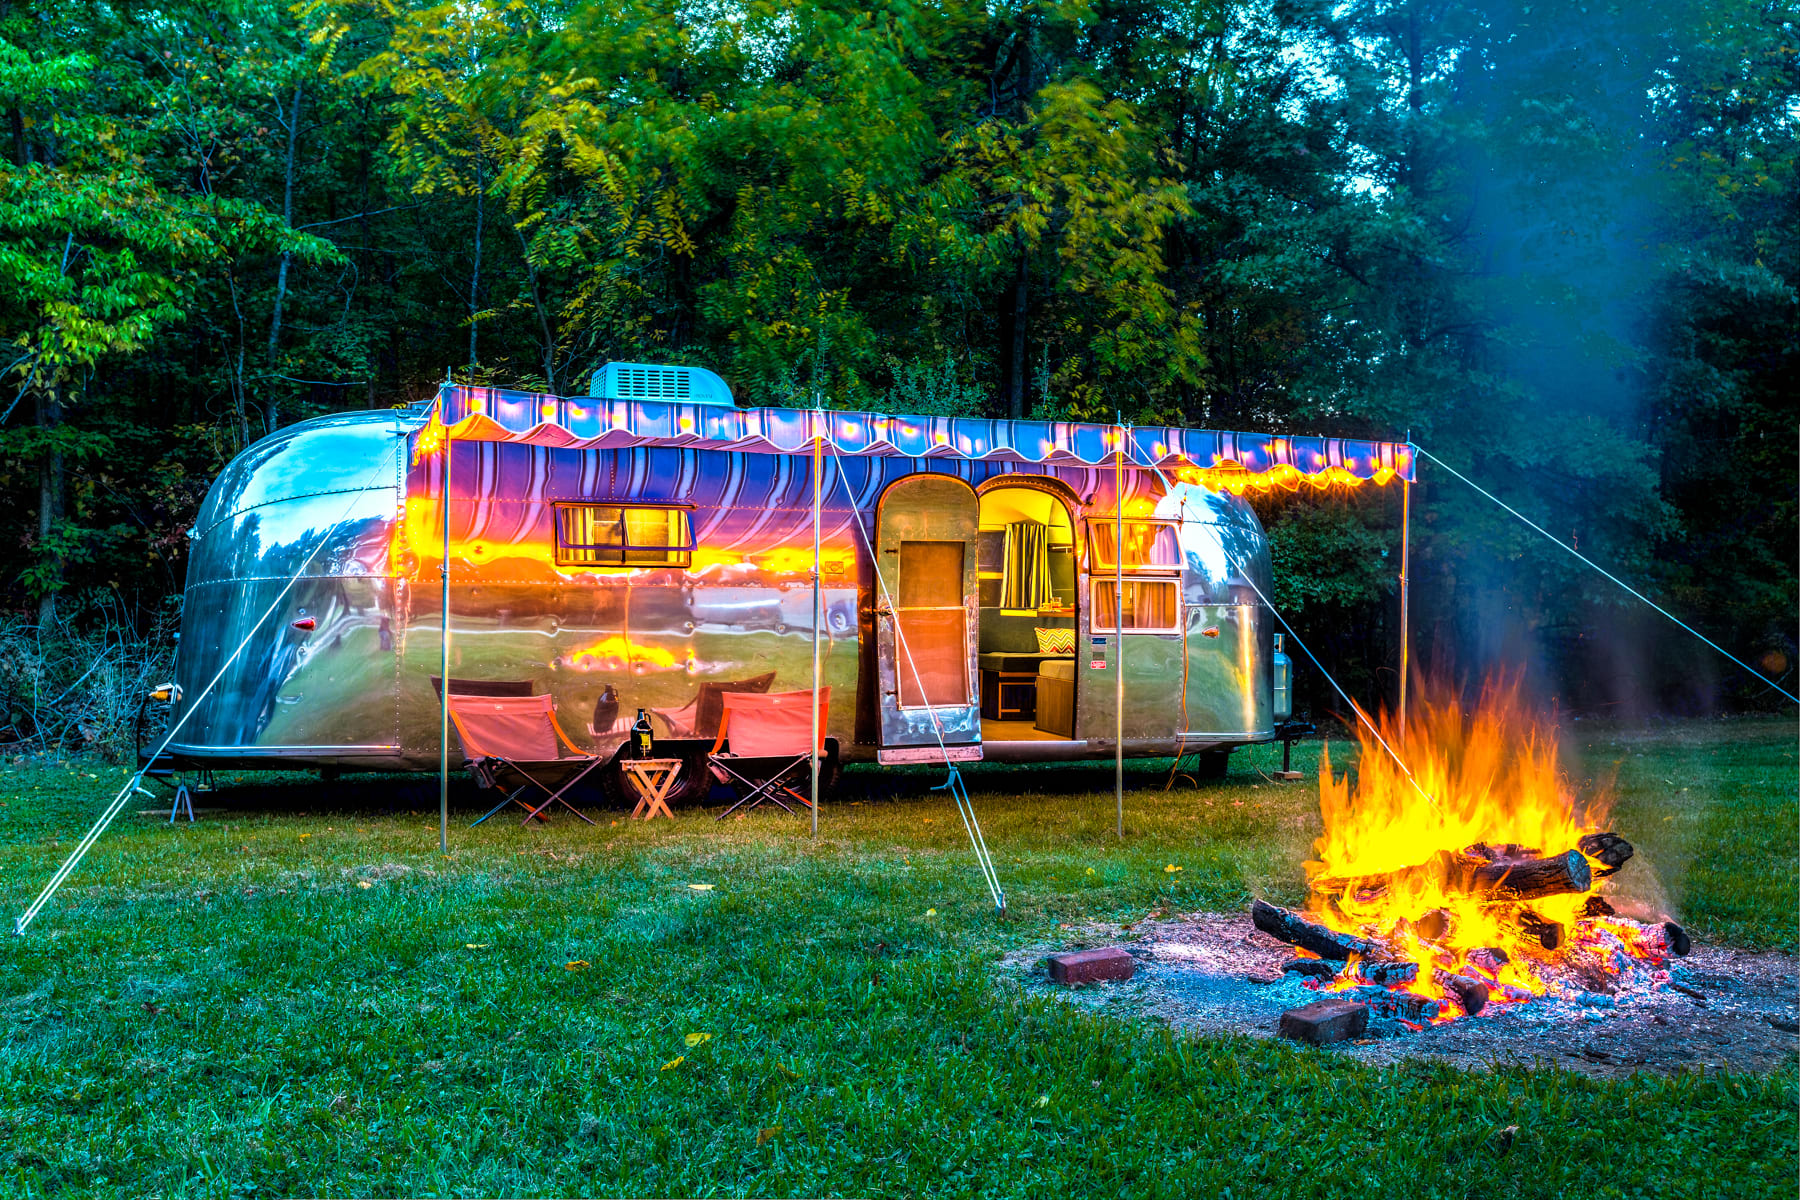 Comes with a large awning for shade to keep you cool and cozy.. Airstream Overlander 1958